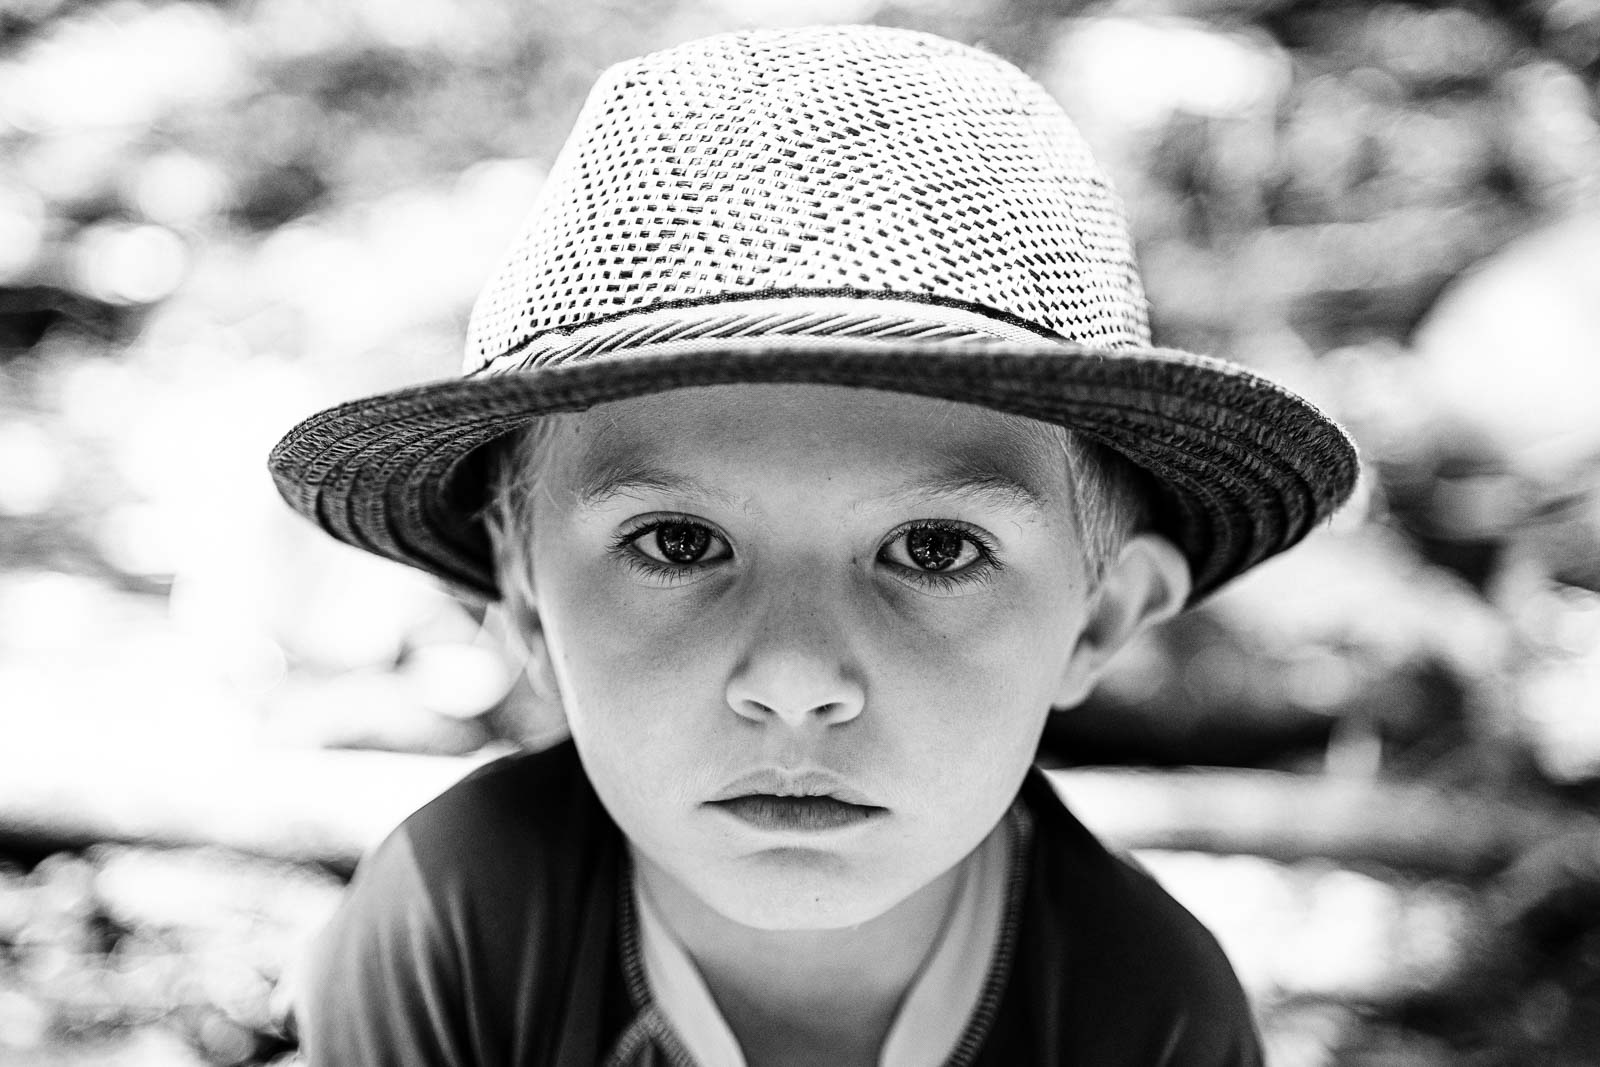 Portrait of a face taken with the Zeiss Batis 40mm lens